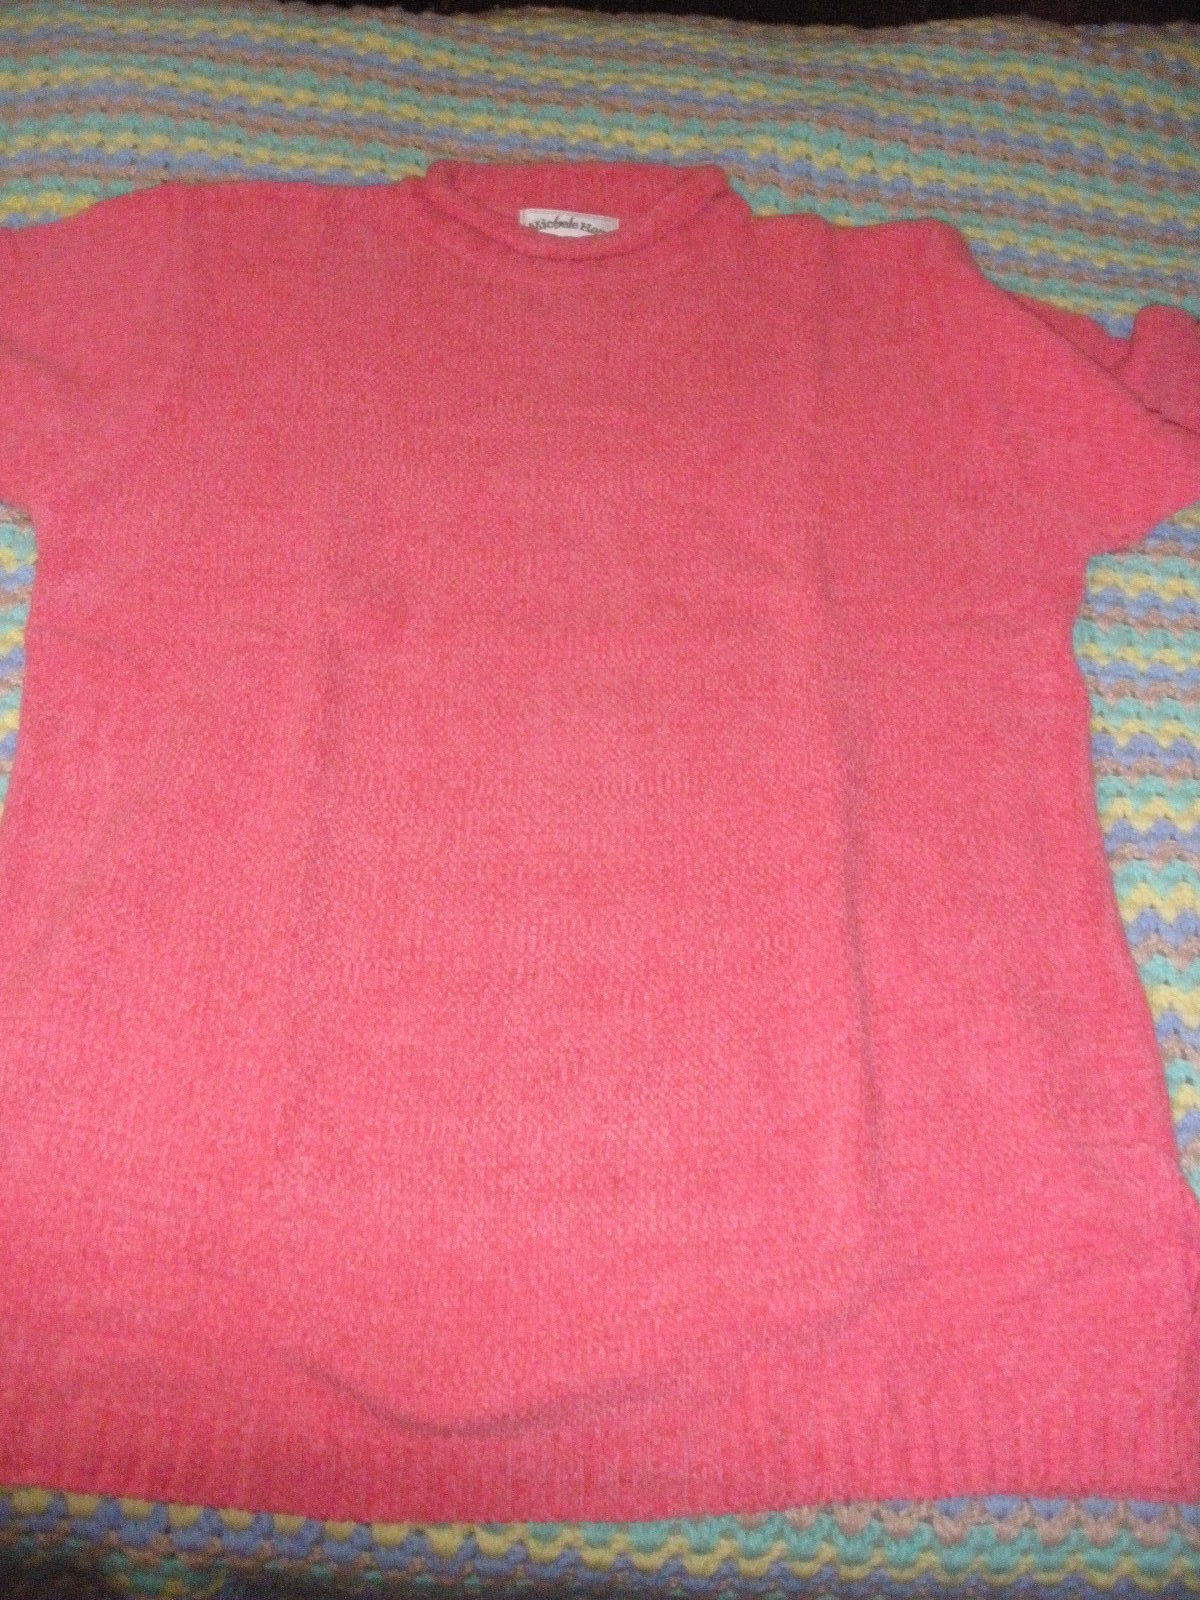 Michele Hope pink acrylic sweater new in package  M roll edge neck side splits - $20.50